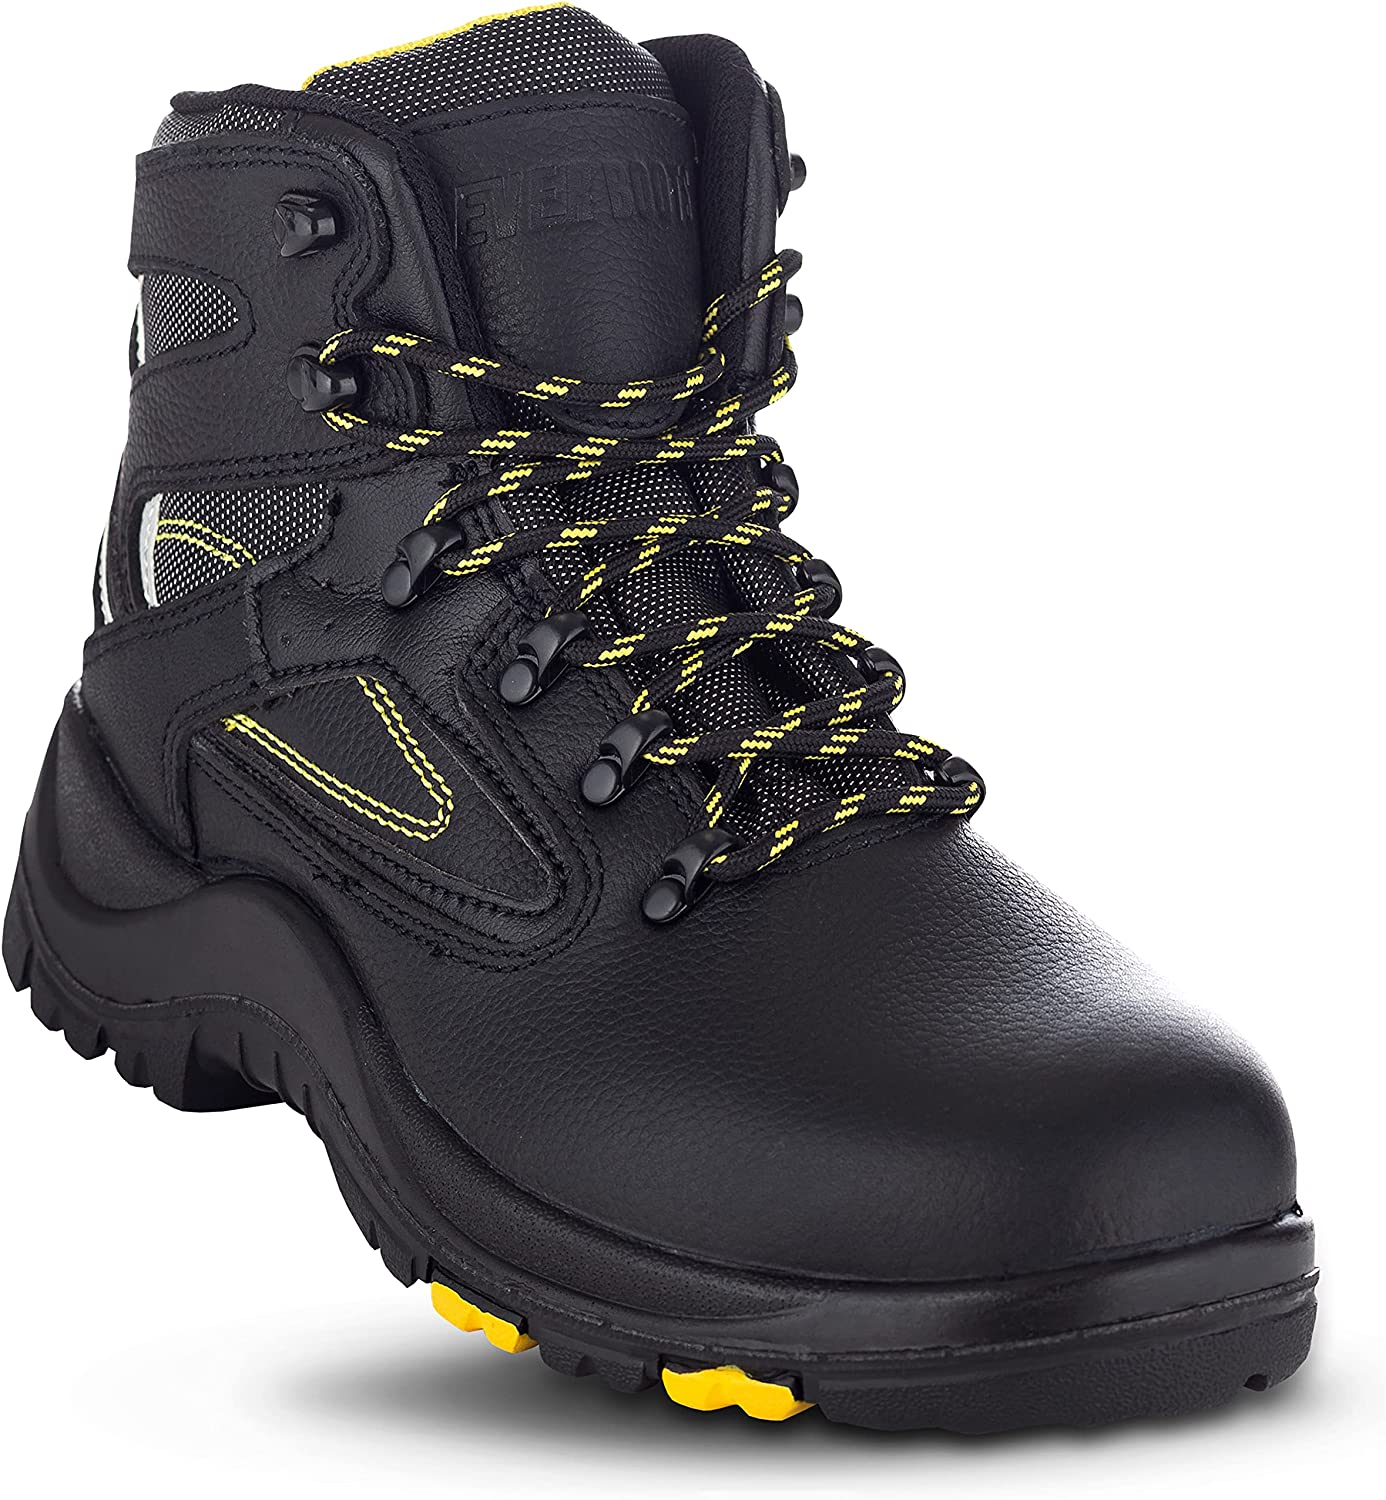 EVER BOOTS Men's New item Steel Work Challenge the lowest price of Japan ☆ Boots Industrial Toe